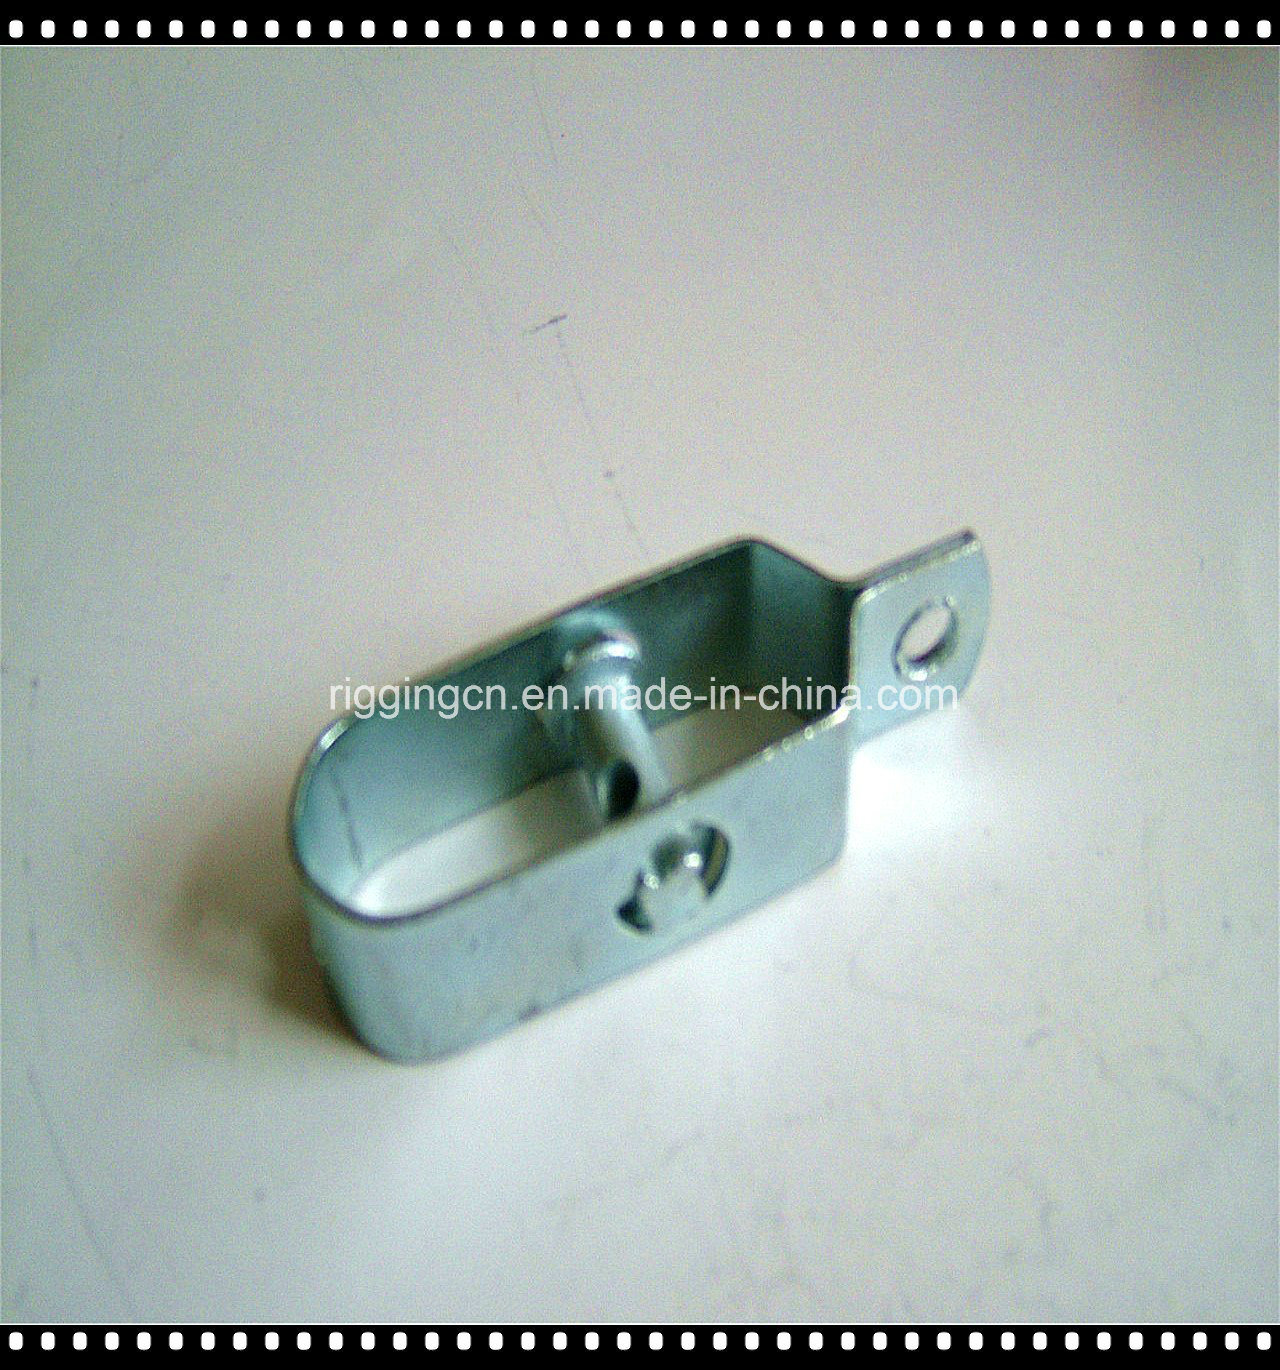 China Wire Rope Tensioner Cable Strainer in 100mm - China Tensioner ...